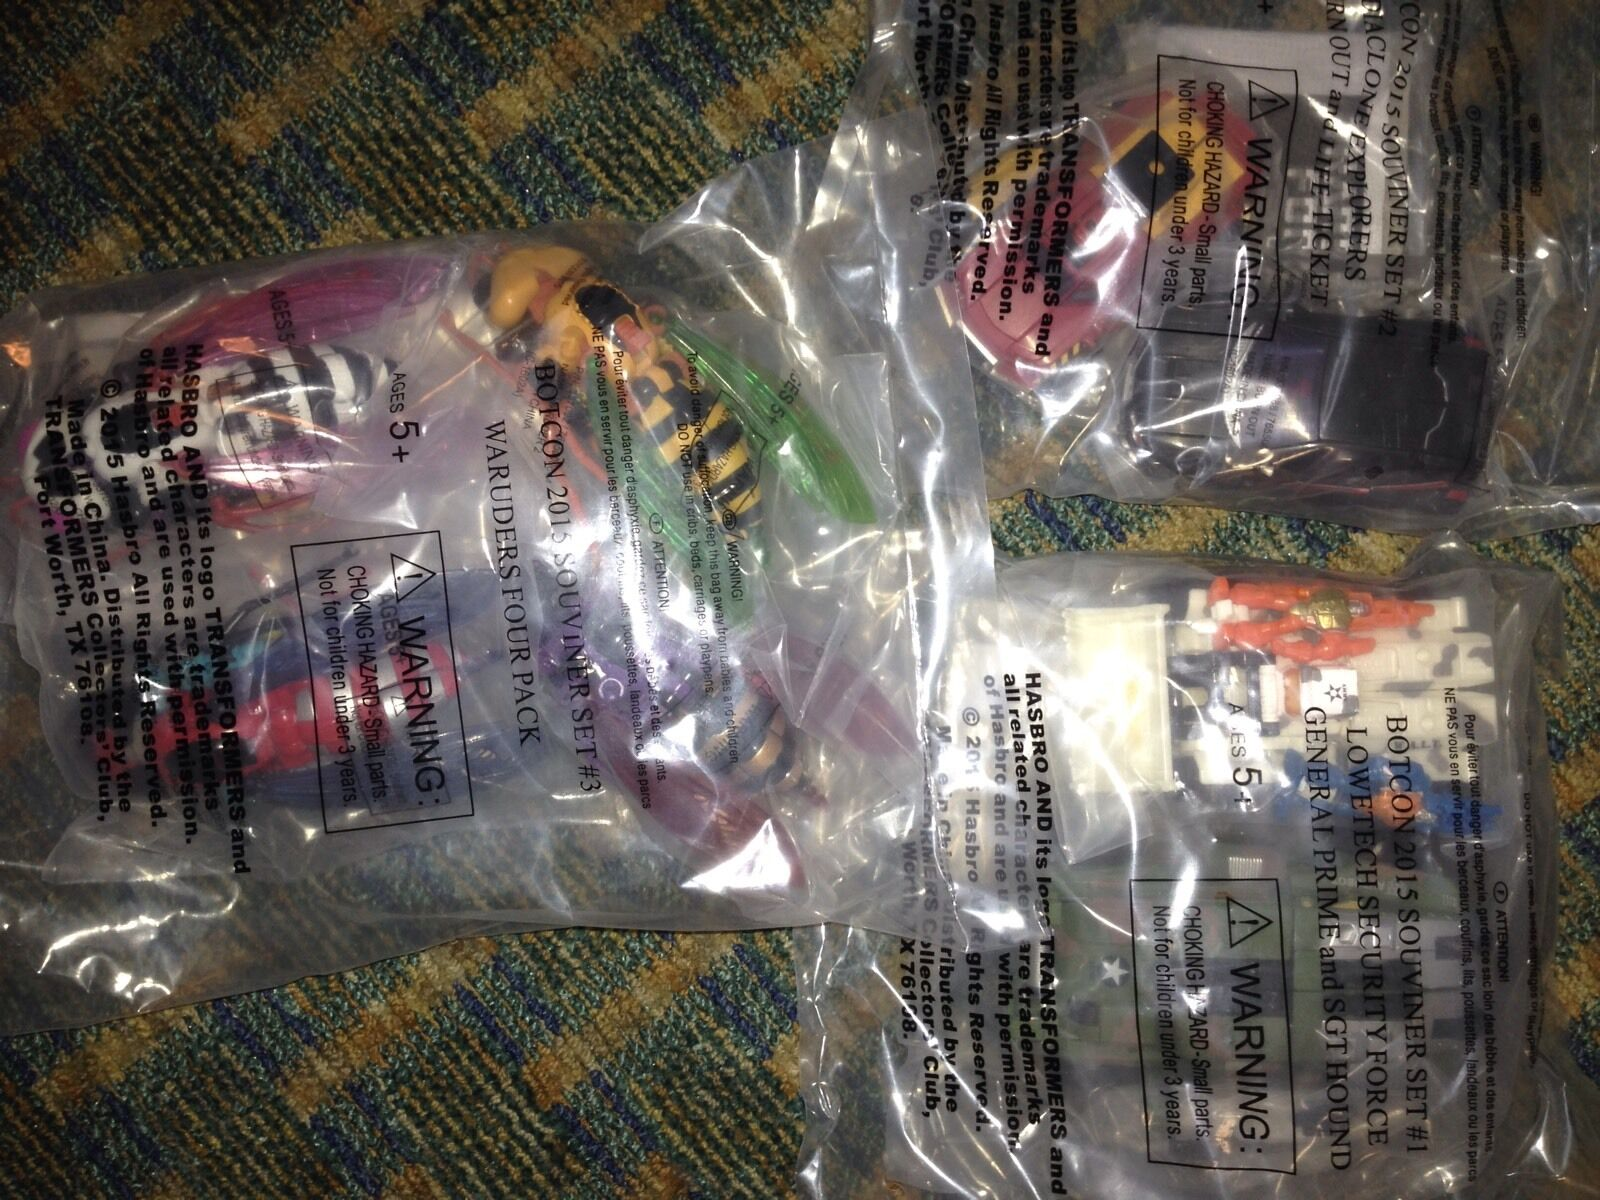 Botcon 2015 Transformers All 3 3 3 Attendee Sets 1 2 3 (8 Figs) G2 Diaclone Waruders f387e5